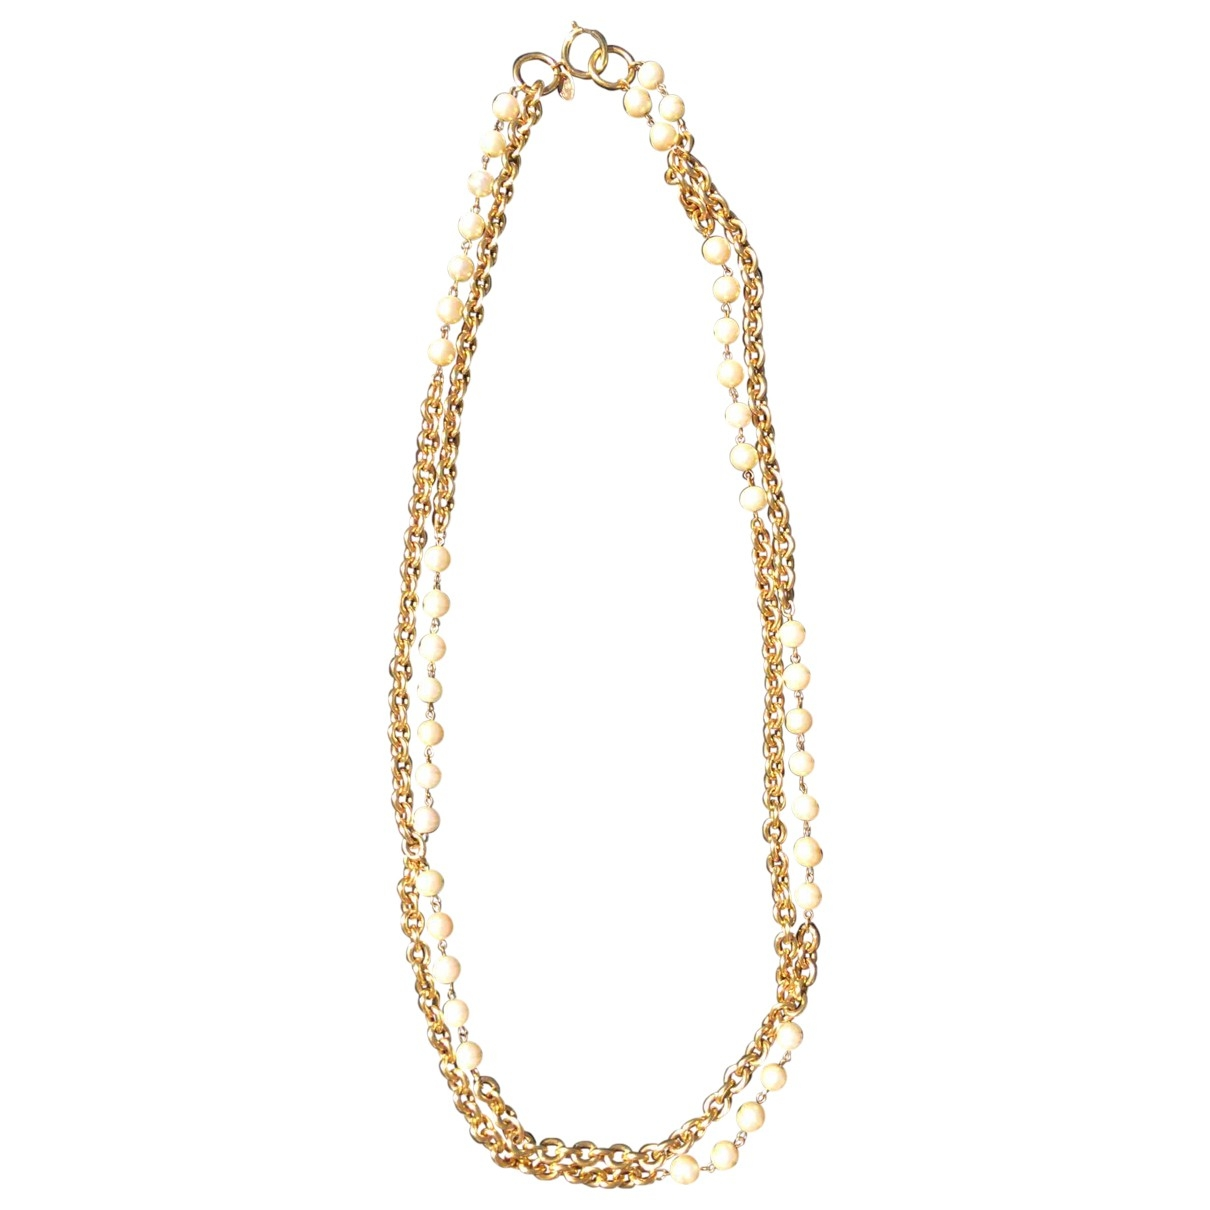 Chanel \N Halskette in  Gold Metall